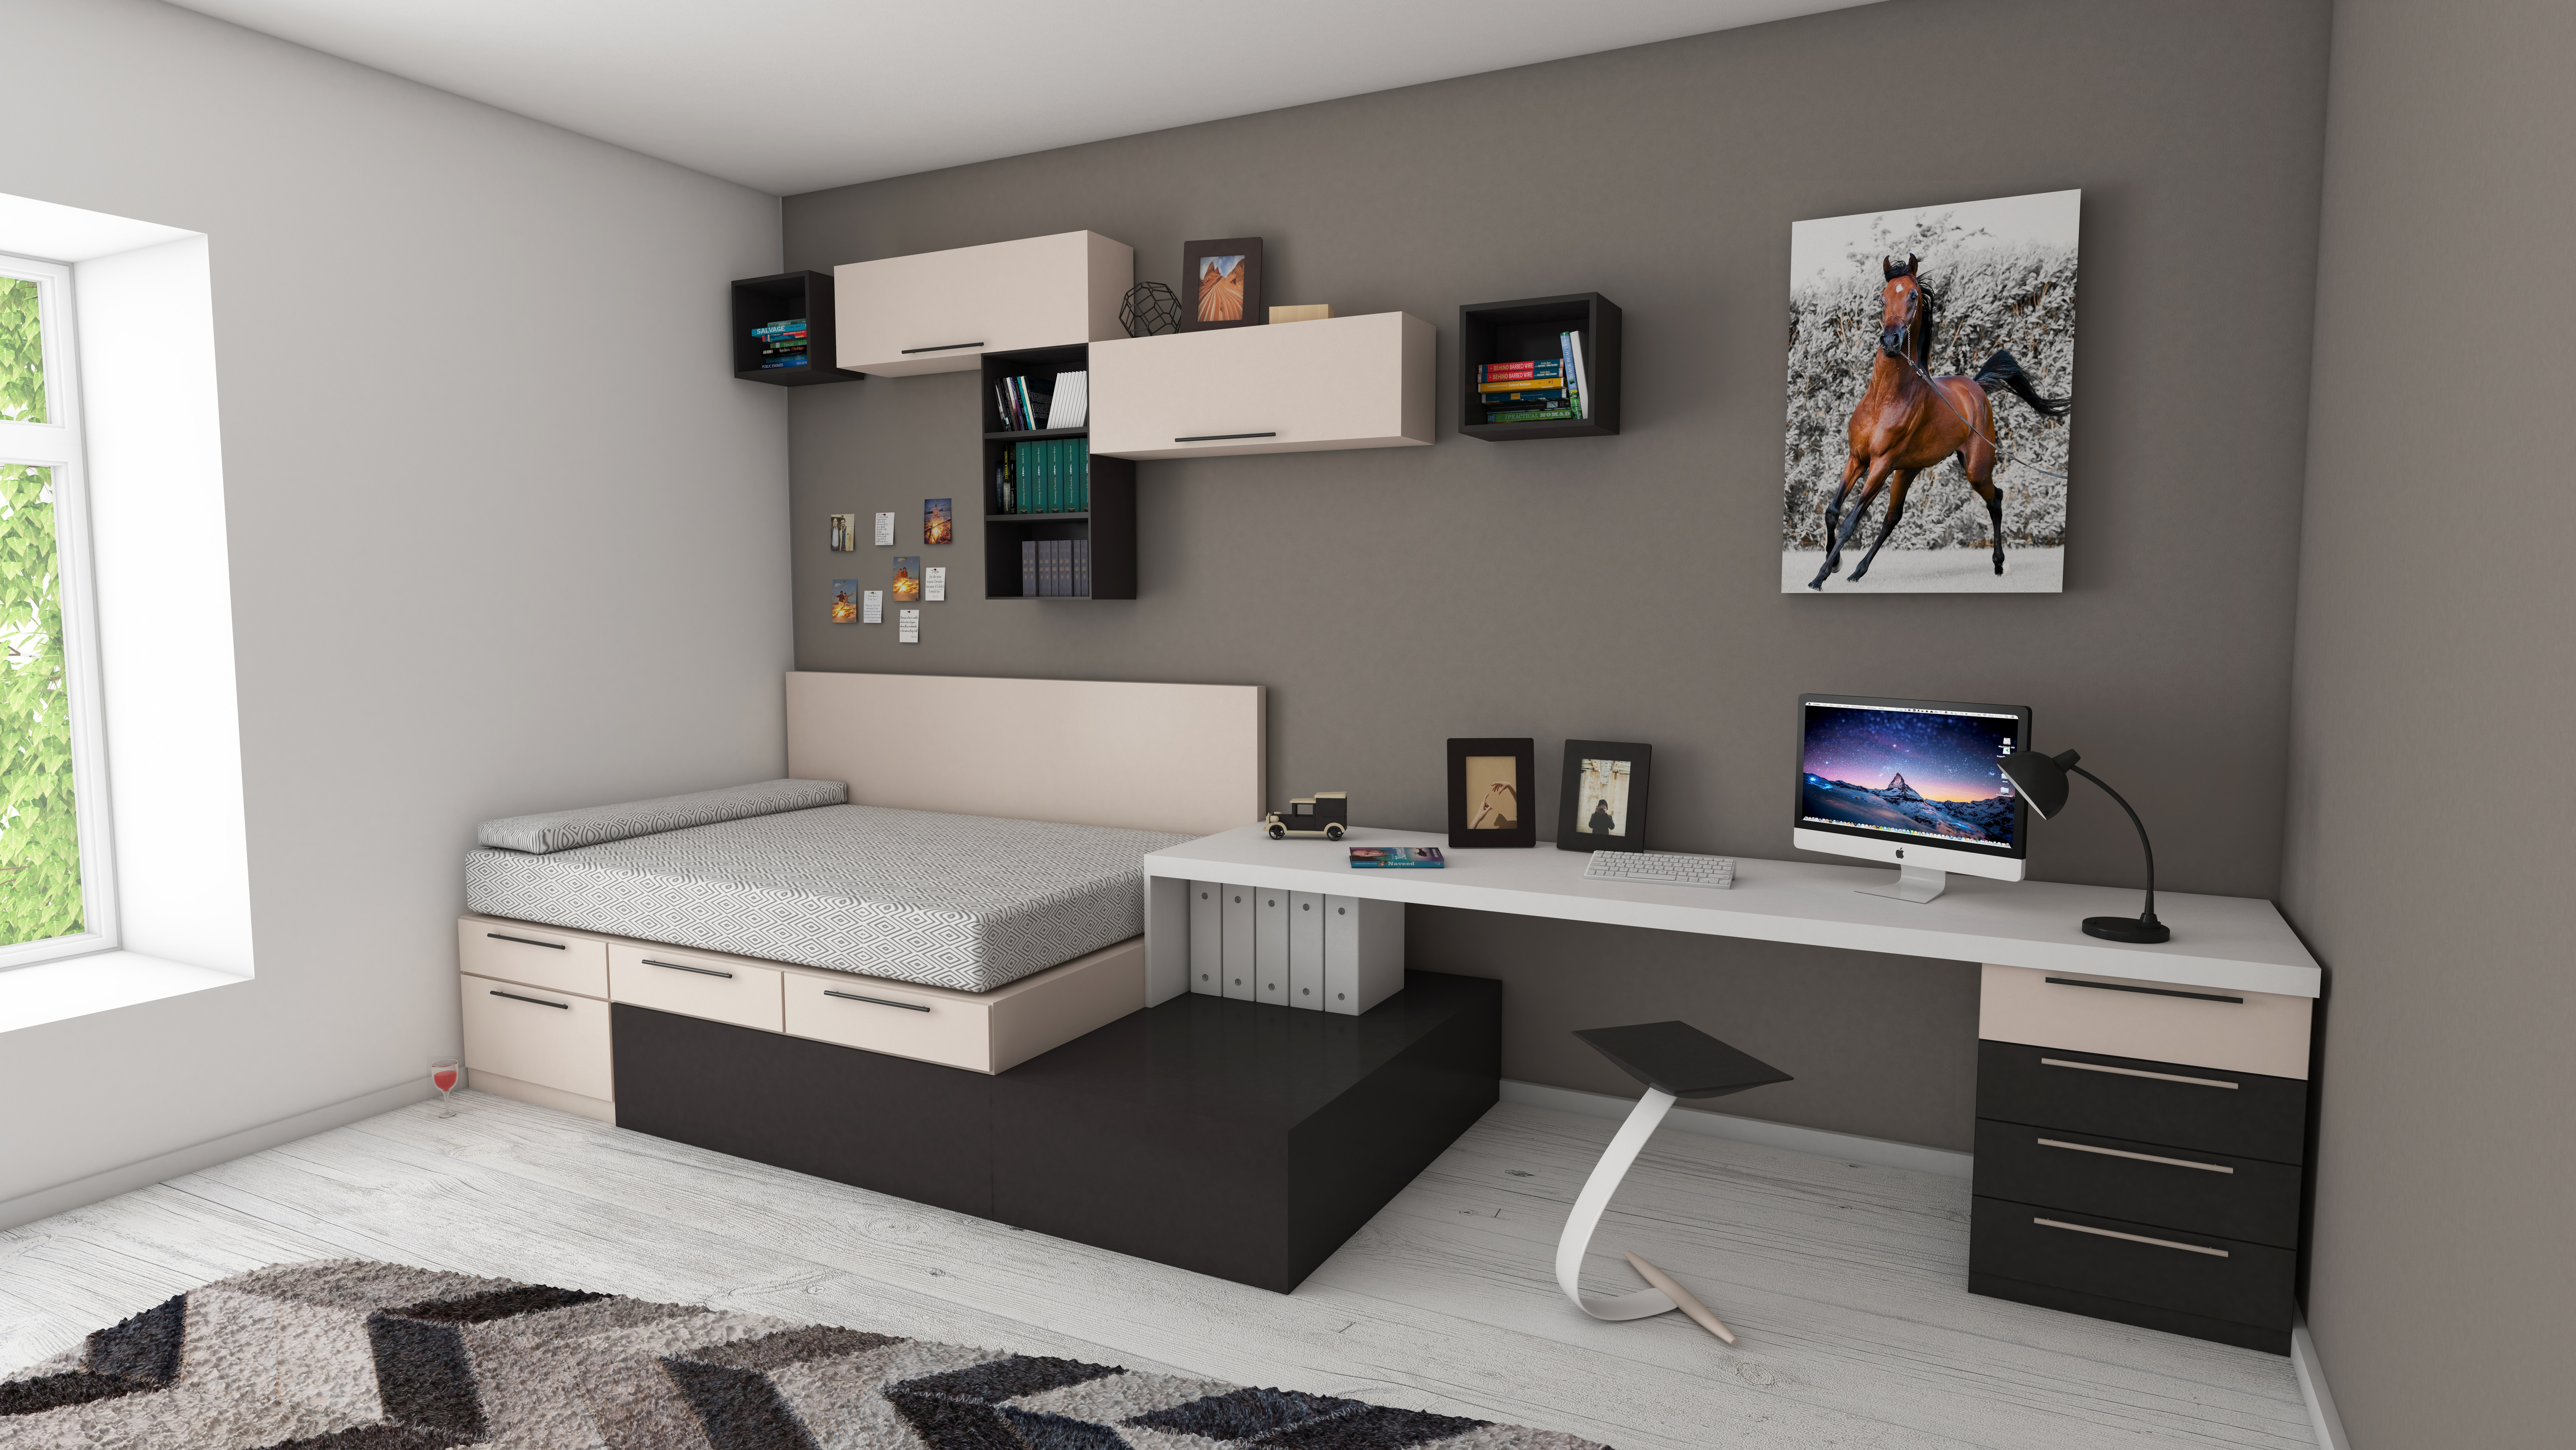 THE LAST MURPHY BED GUIDE YOU'LL EVER NEED